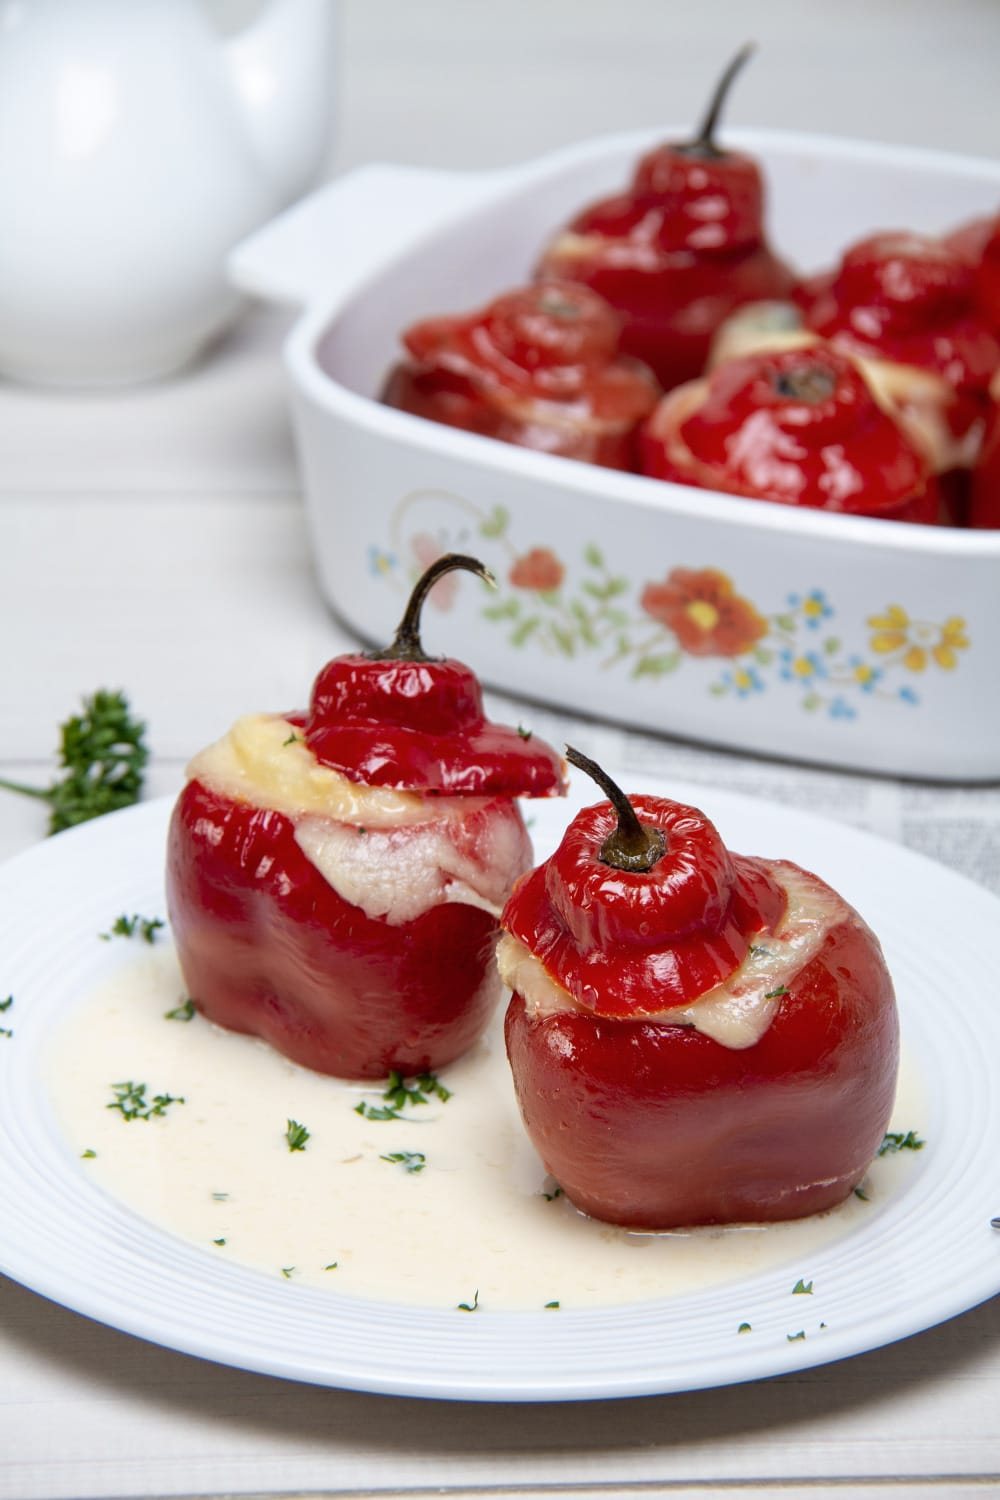 Stuffed Red Peppers On Plate With Evaporated Milk Sauce